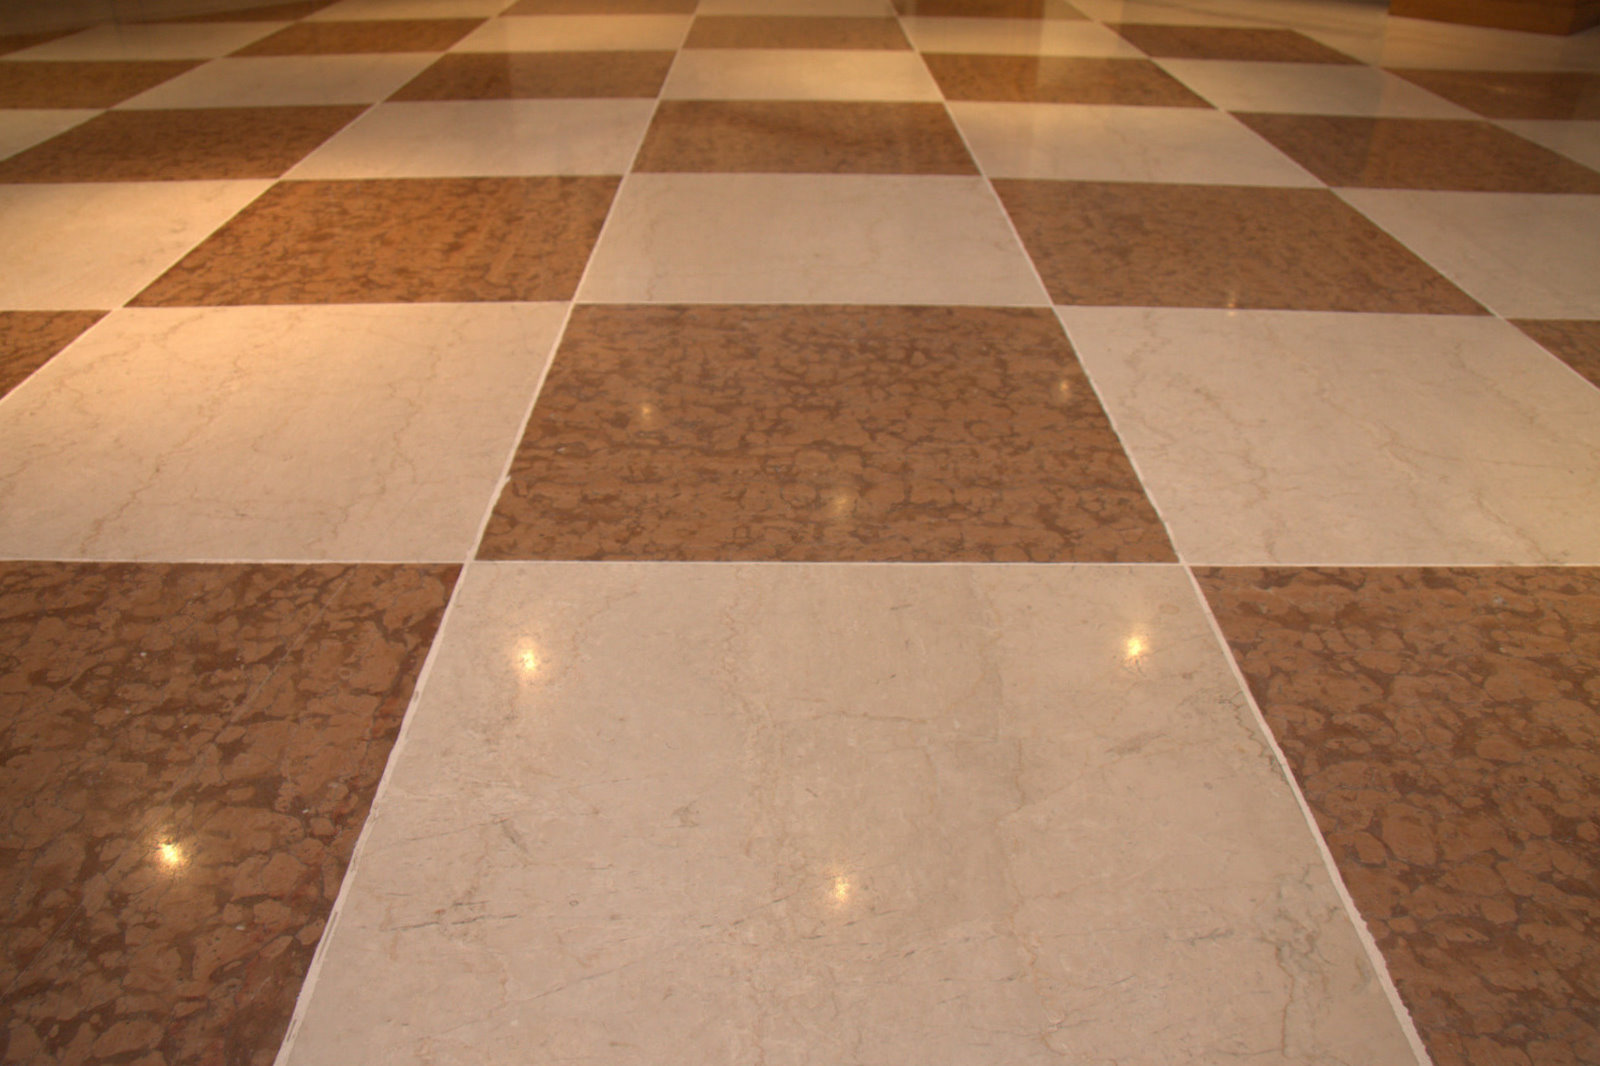 Marble floor aegean stone limited for Floor tiles images